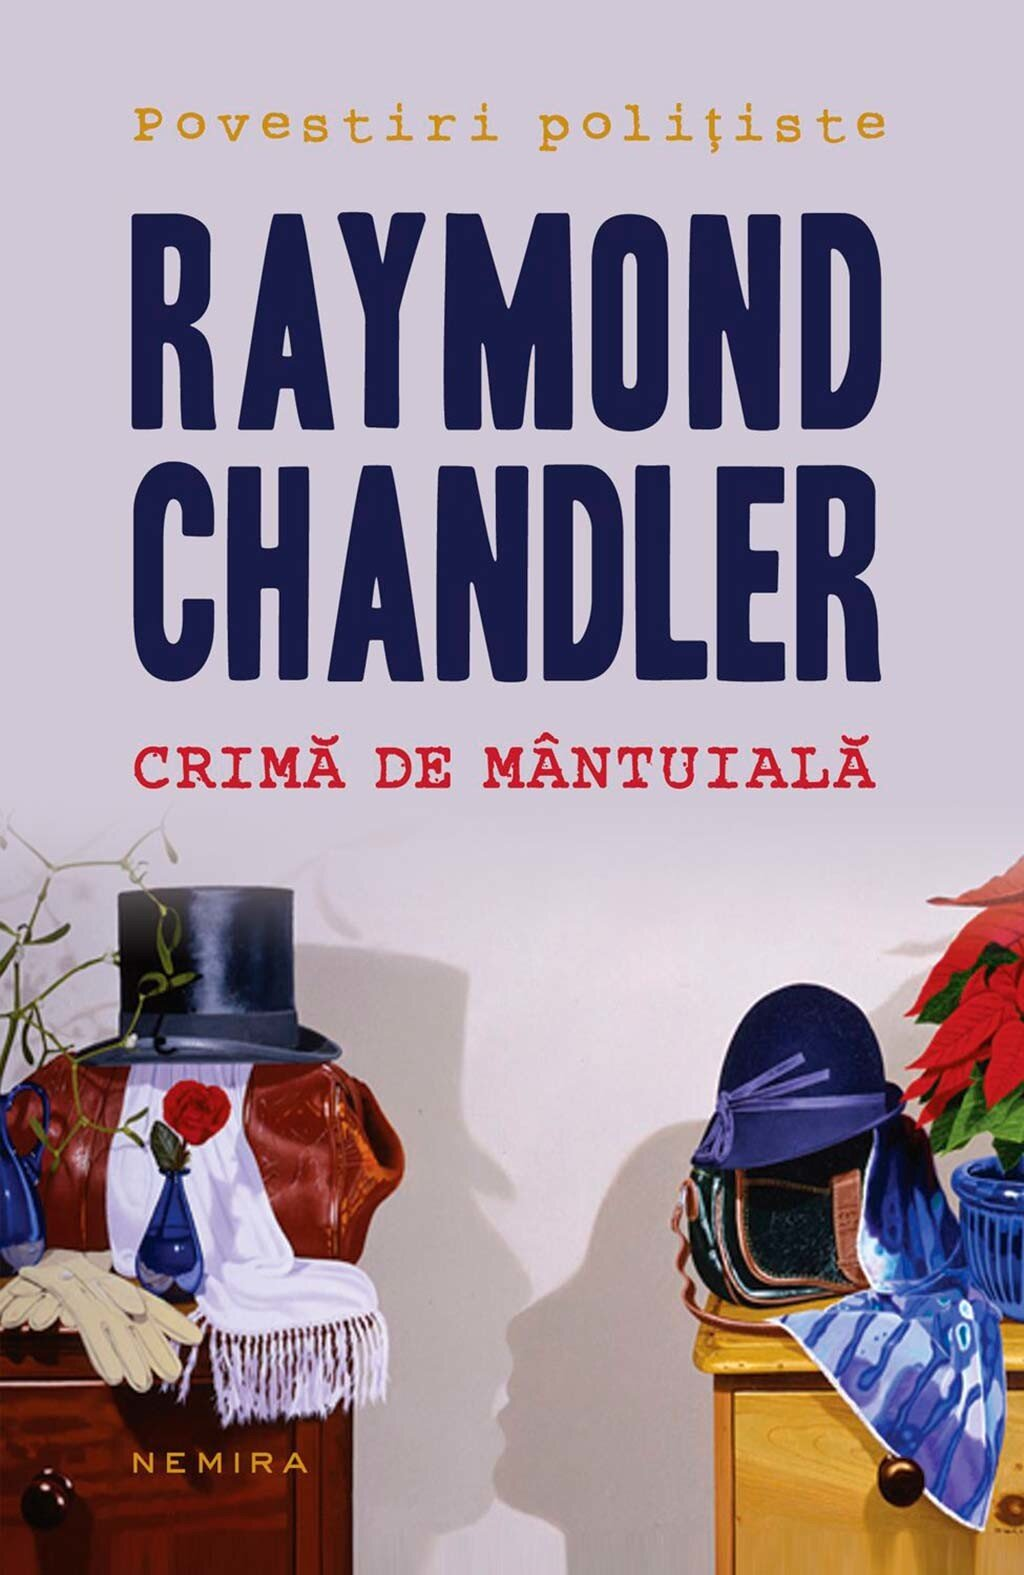 Crima de mantuiala PDF (Download eBook)